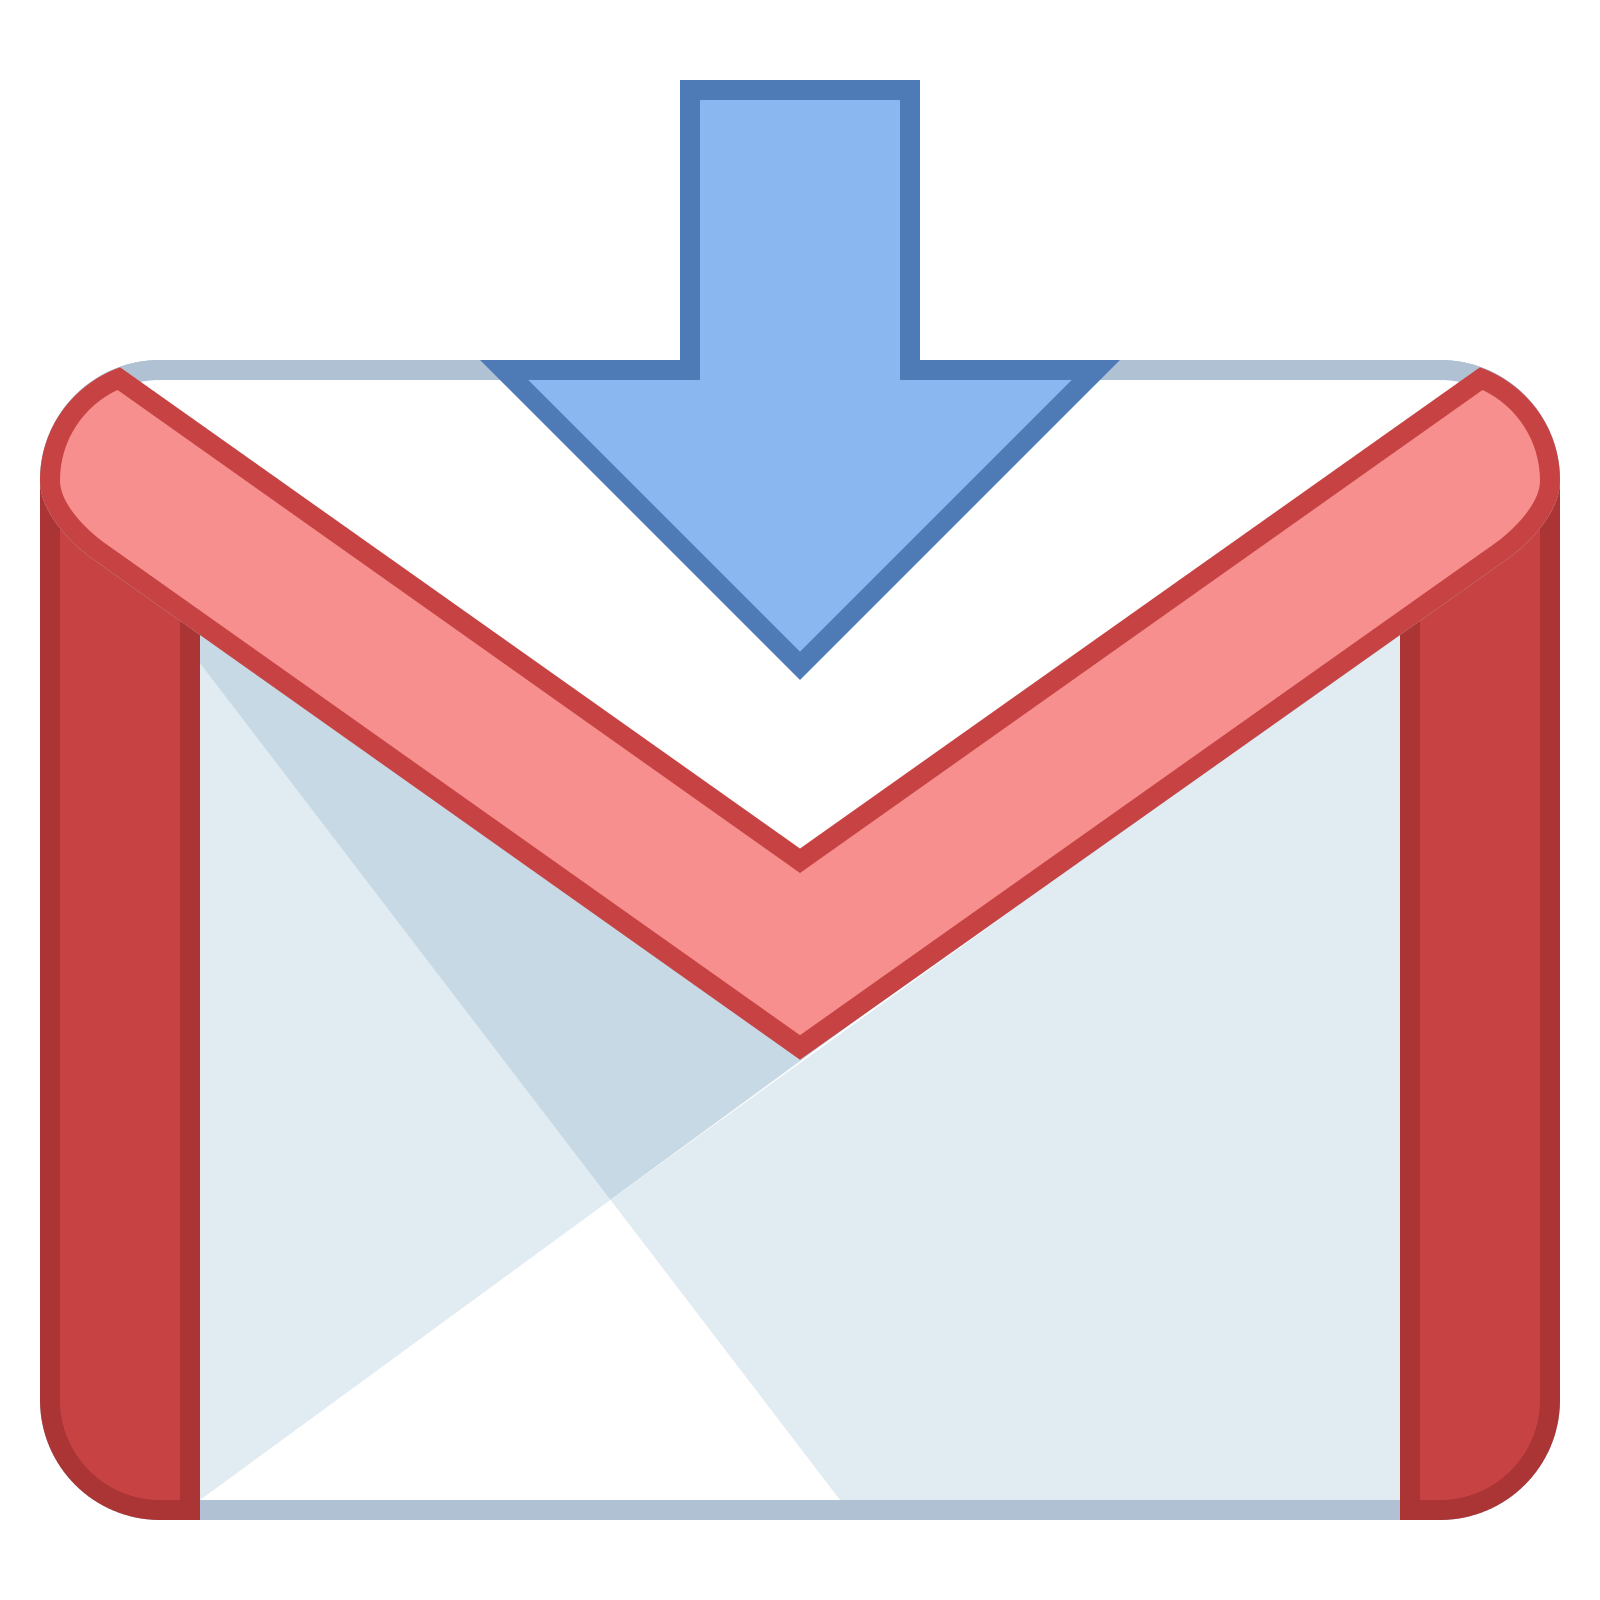 Account Google Icons Computer Inbox By Gmail PNG Image